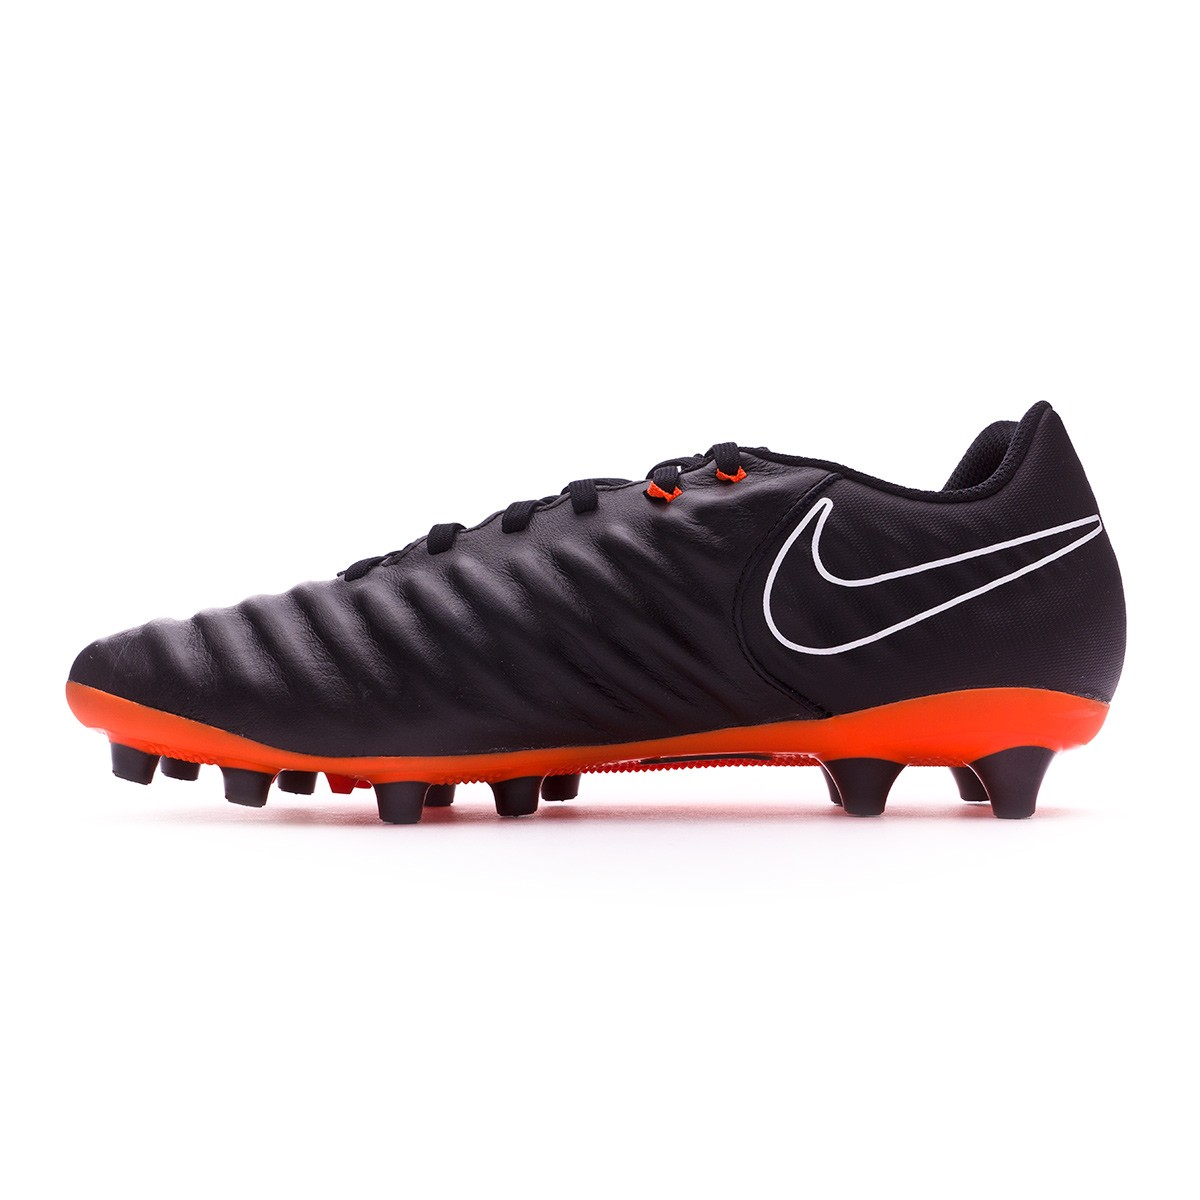 newest 77fa5 bd1a3 Bota Tiempo Legend VII Academy AG-Pro Black-Total orange-White